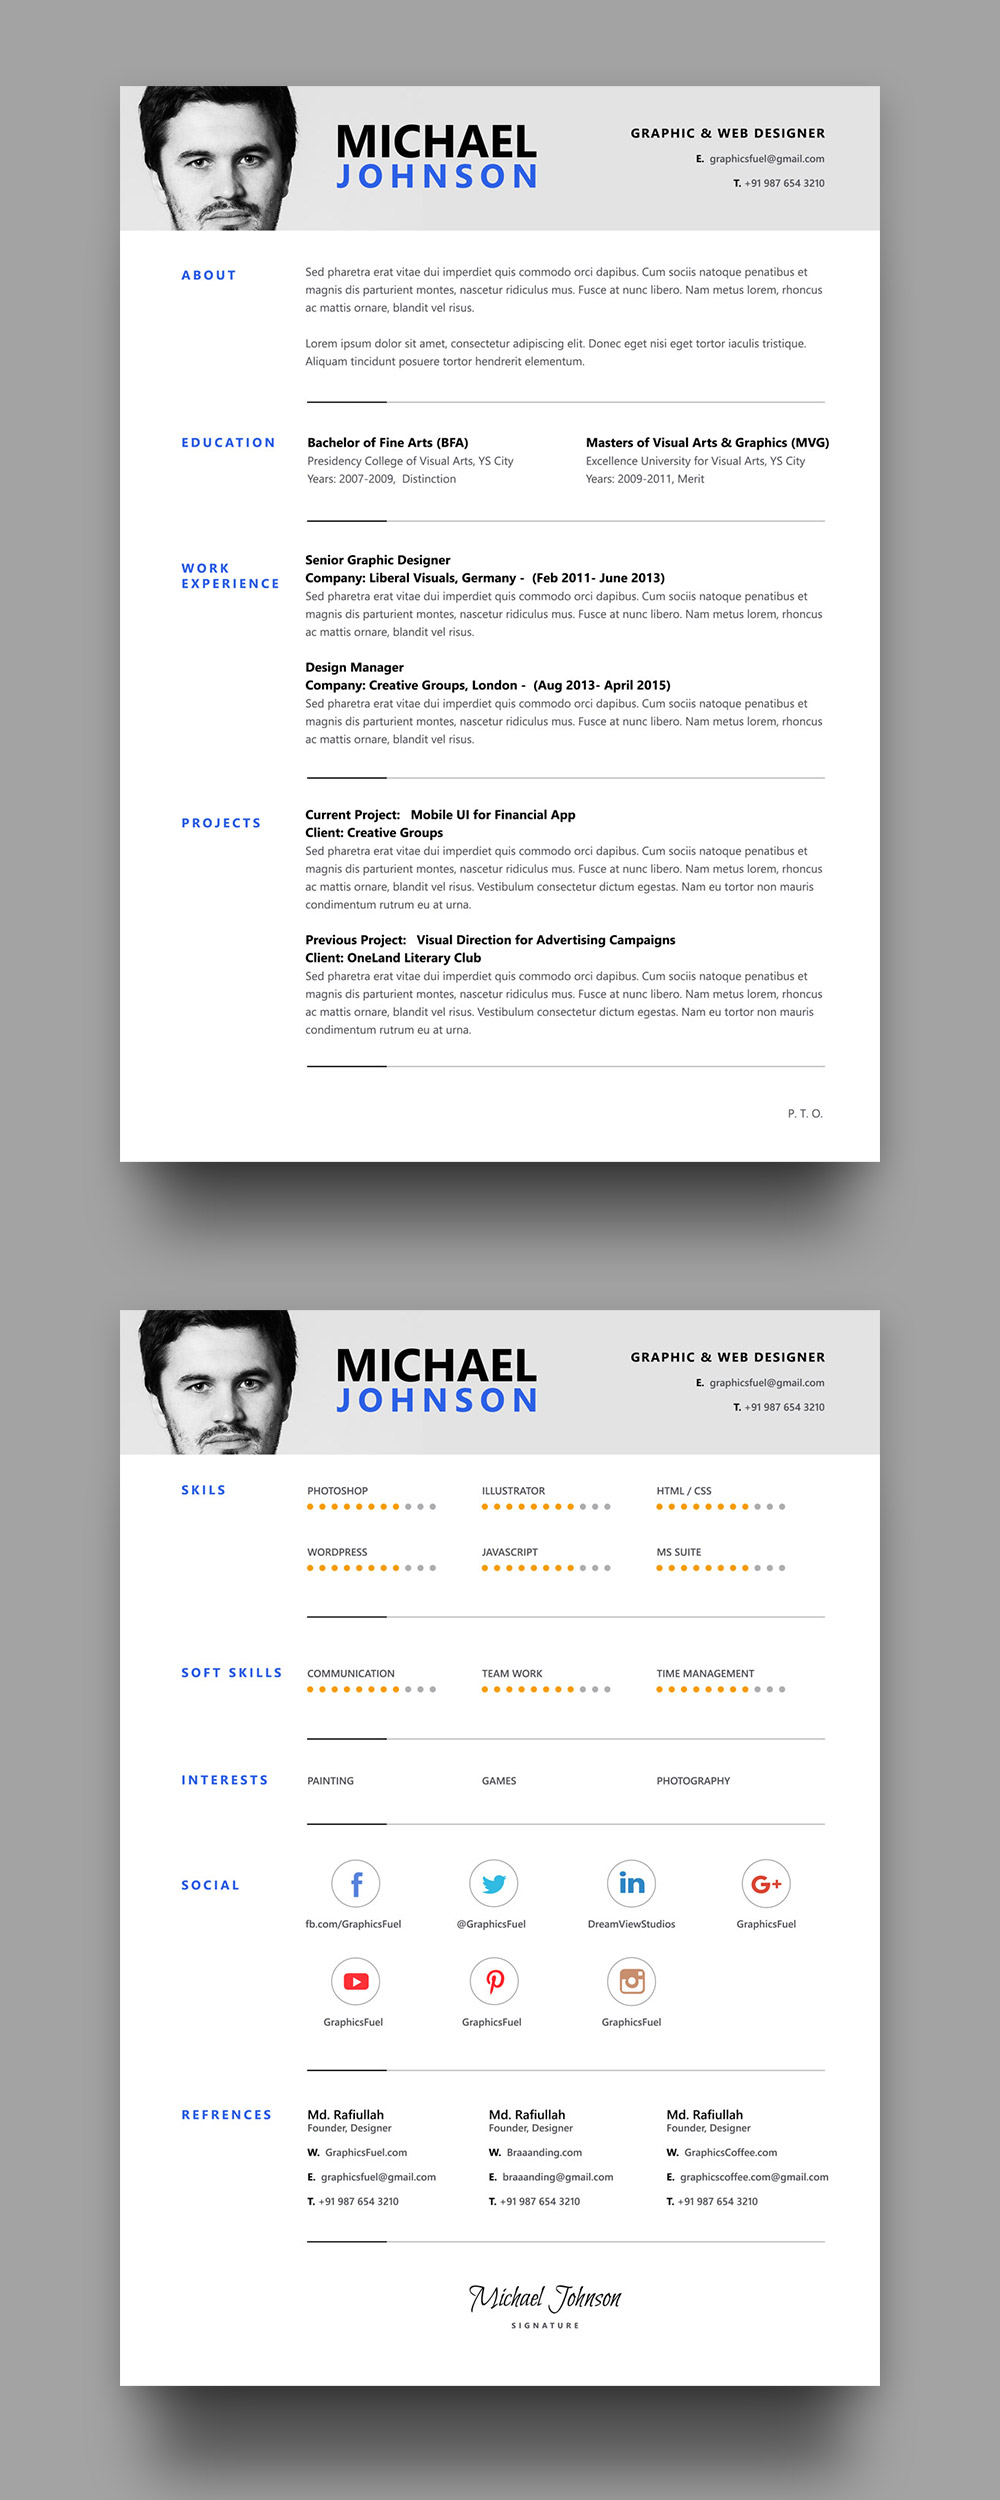 Graphics resume templates